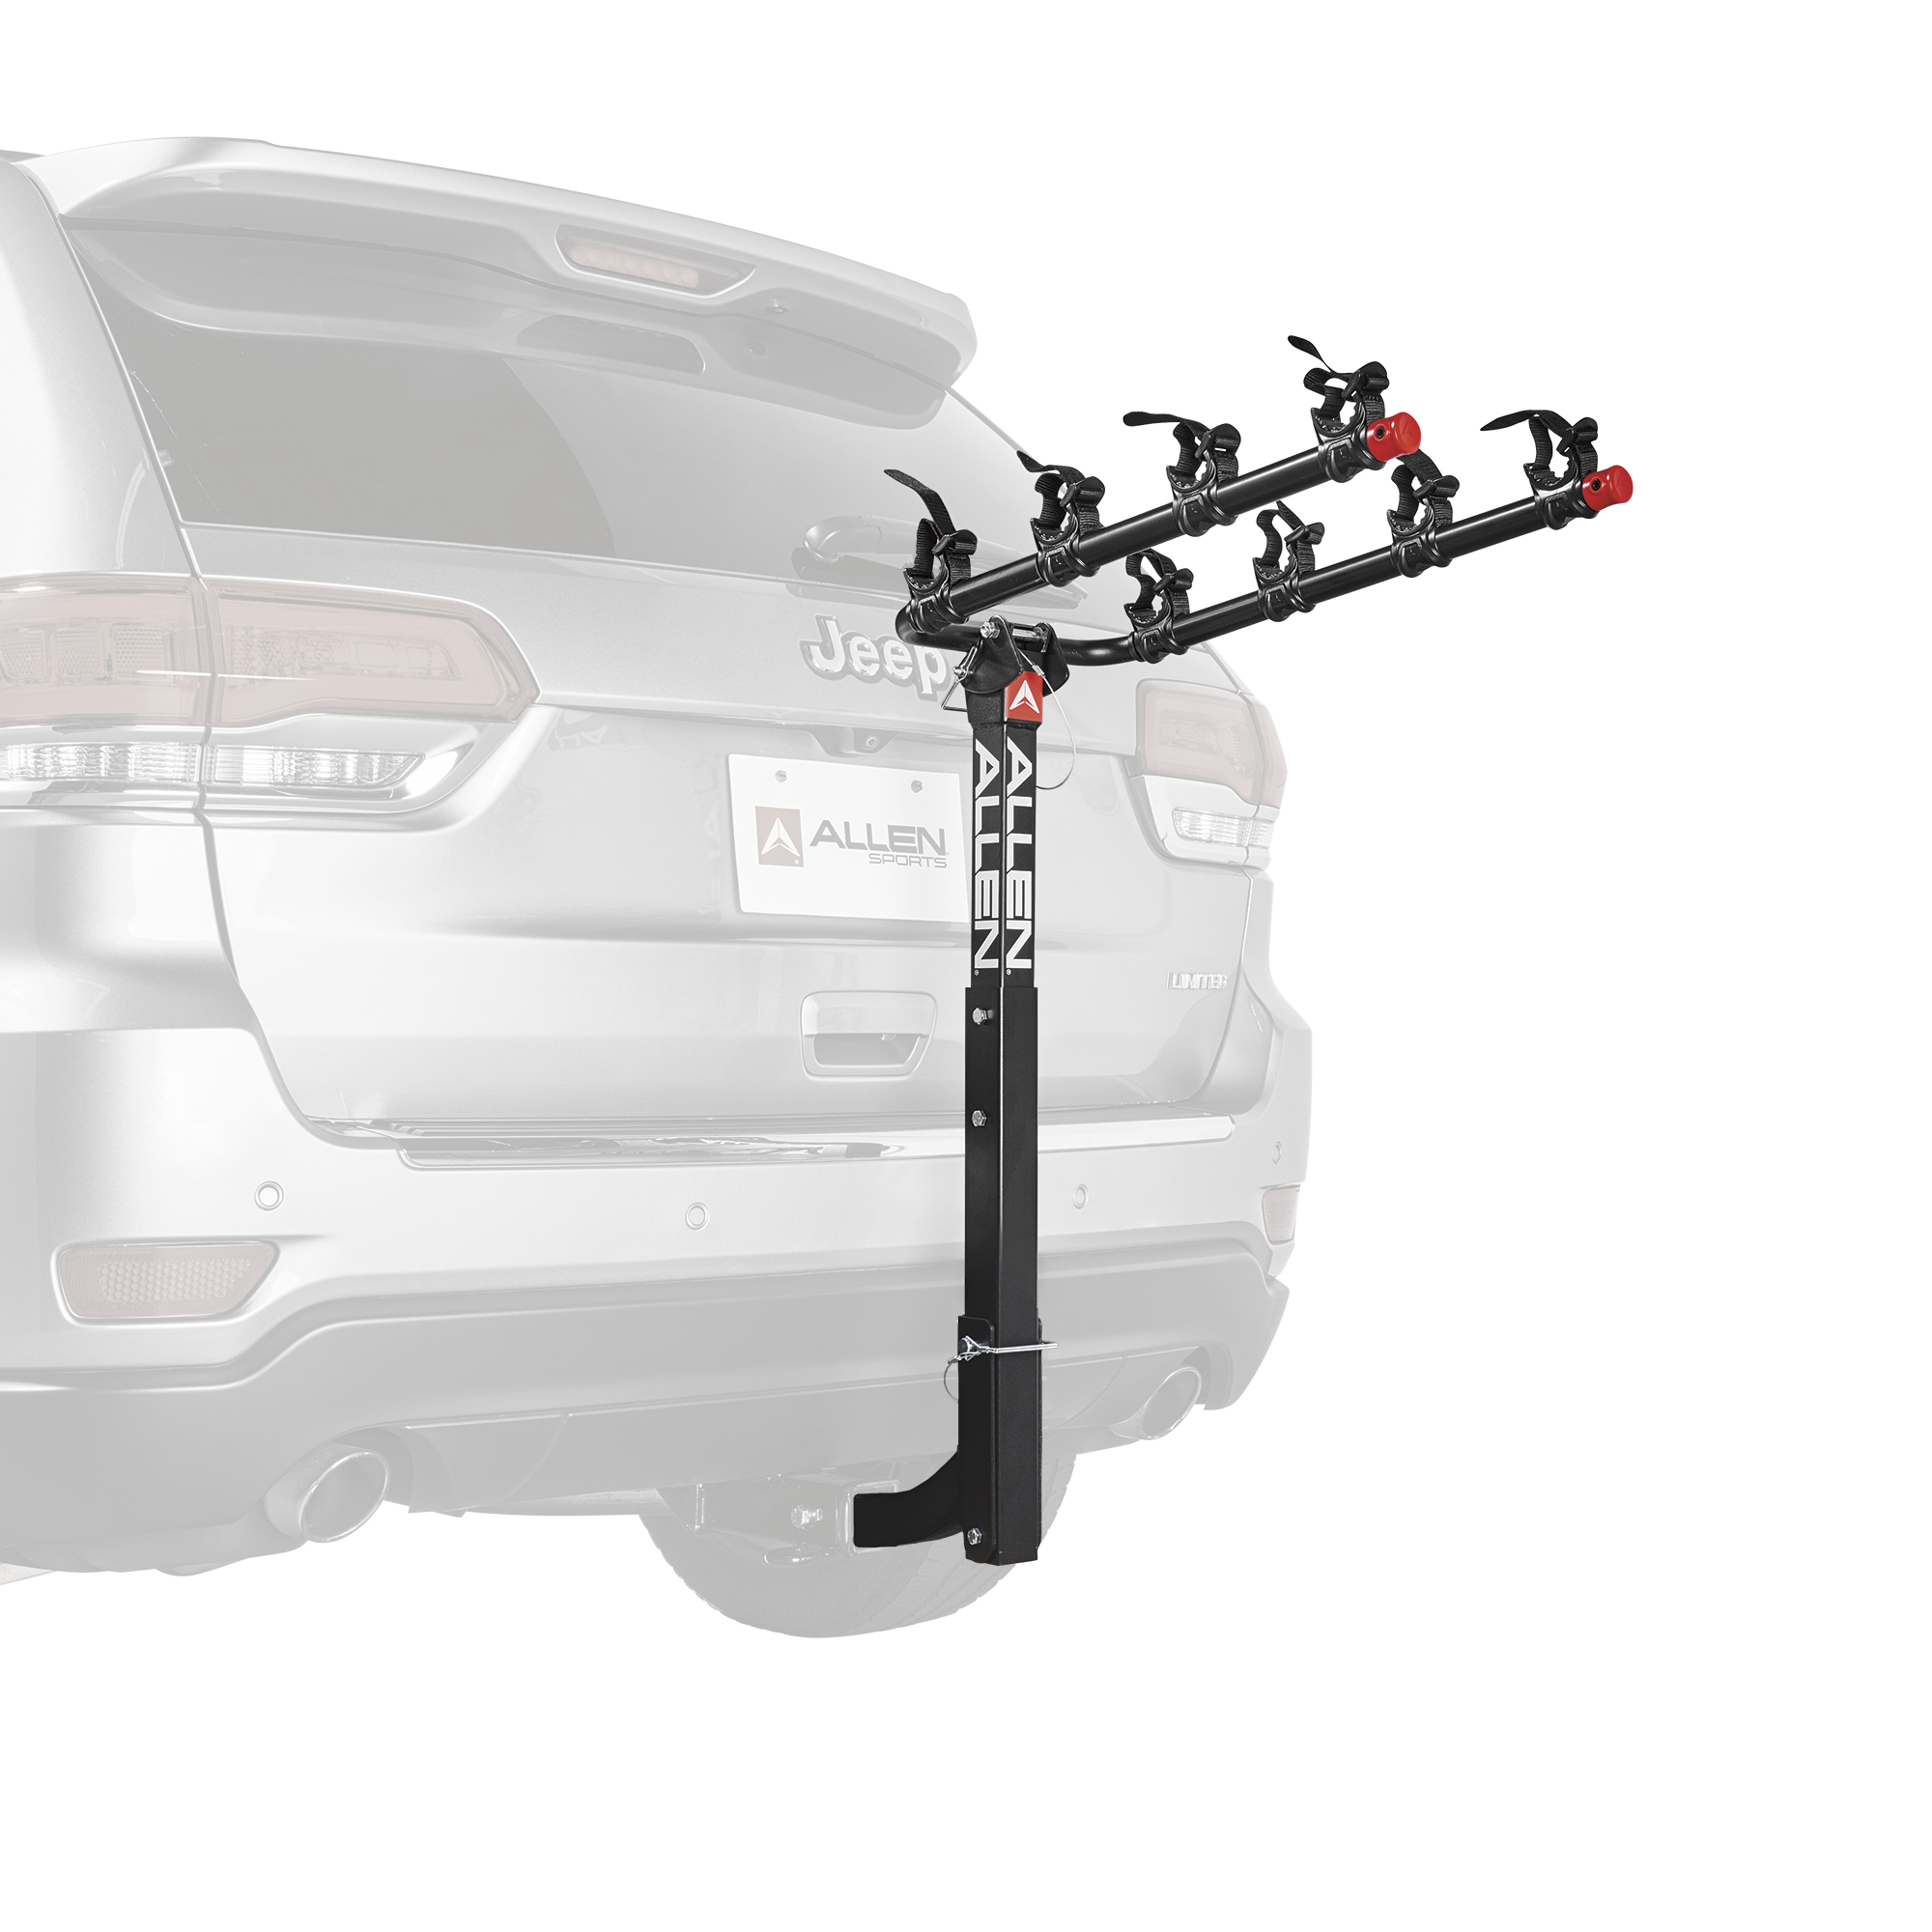 Allen Sports Deluxe 4-Bicycle Hitch Mounted Bike Rack Carrier